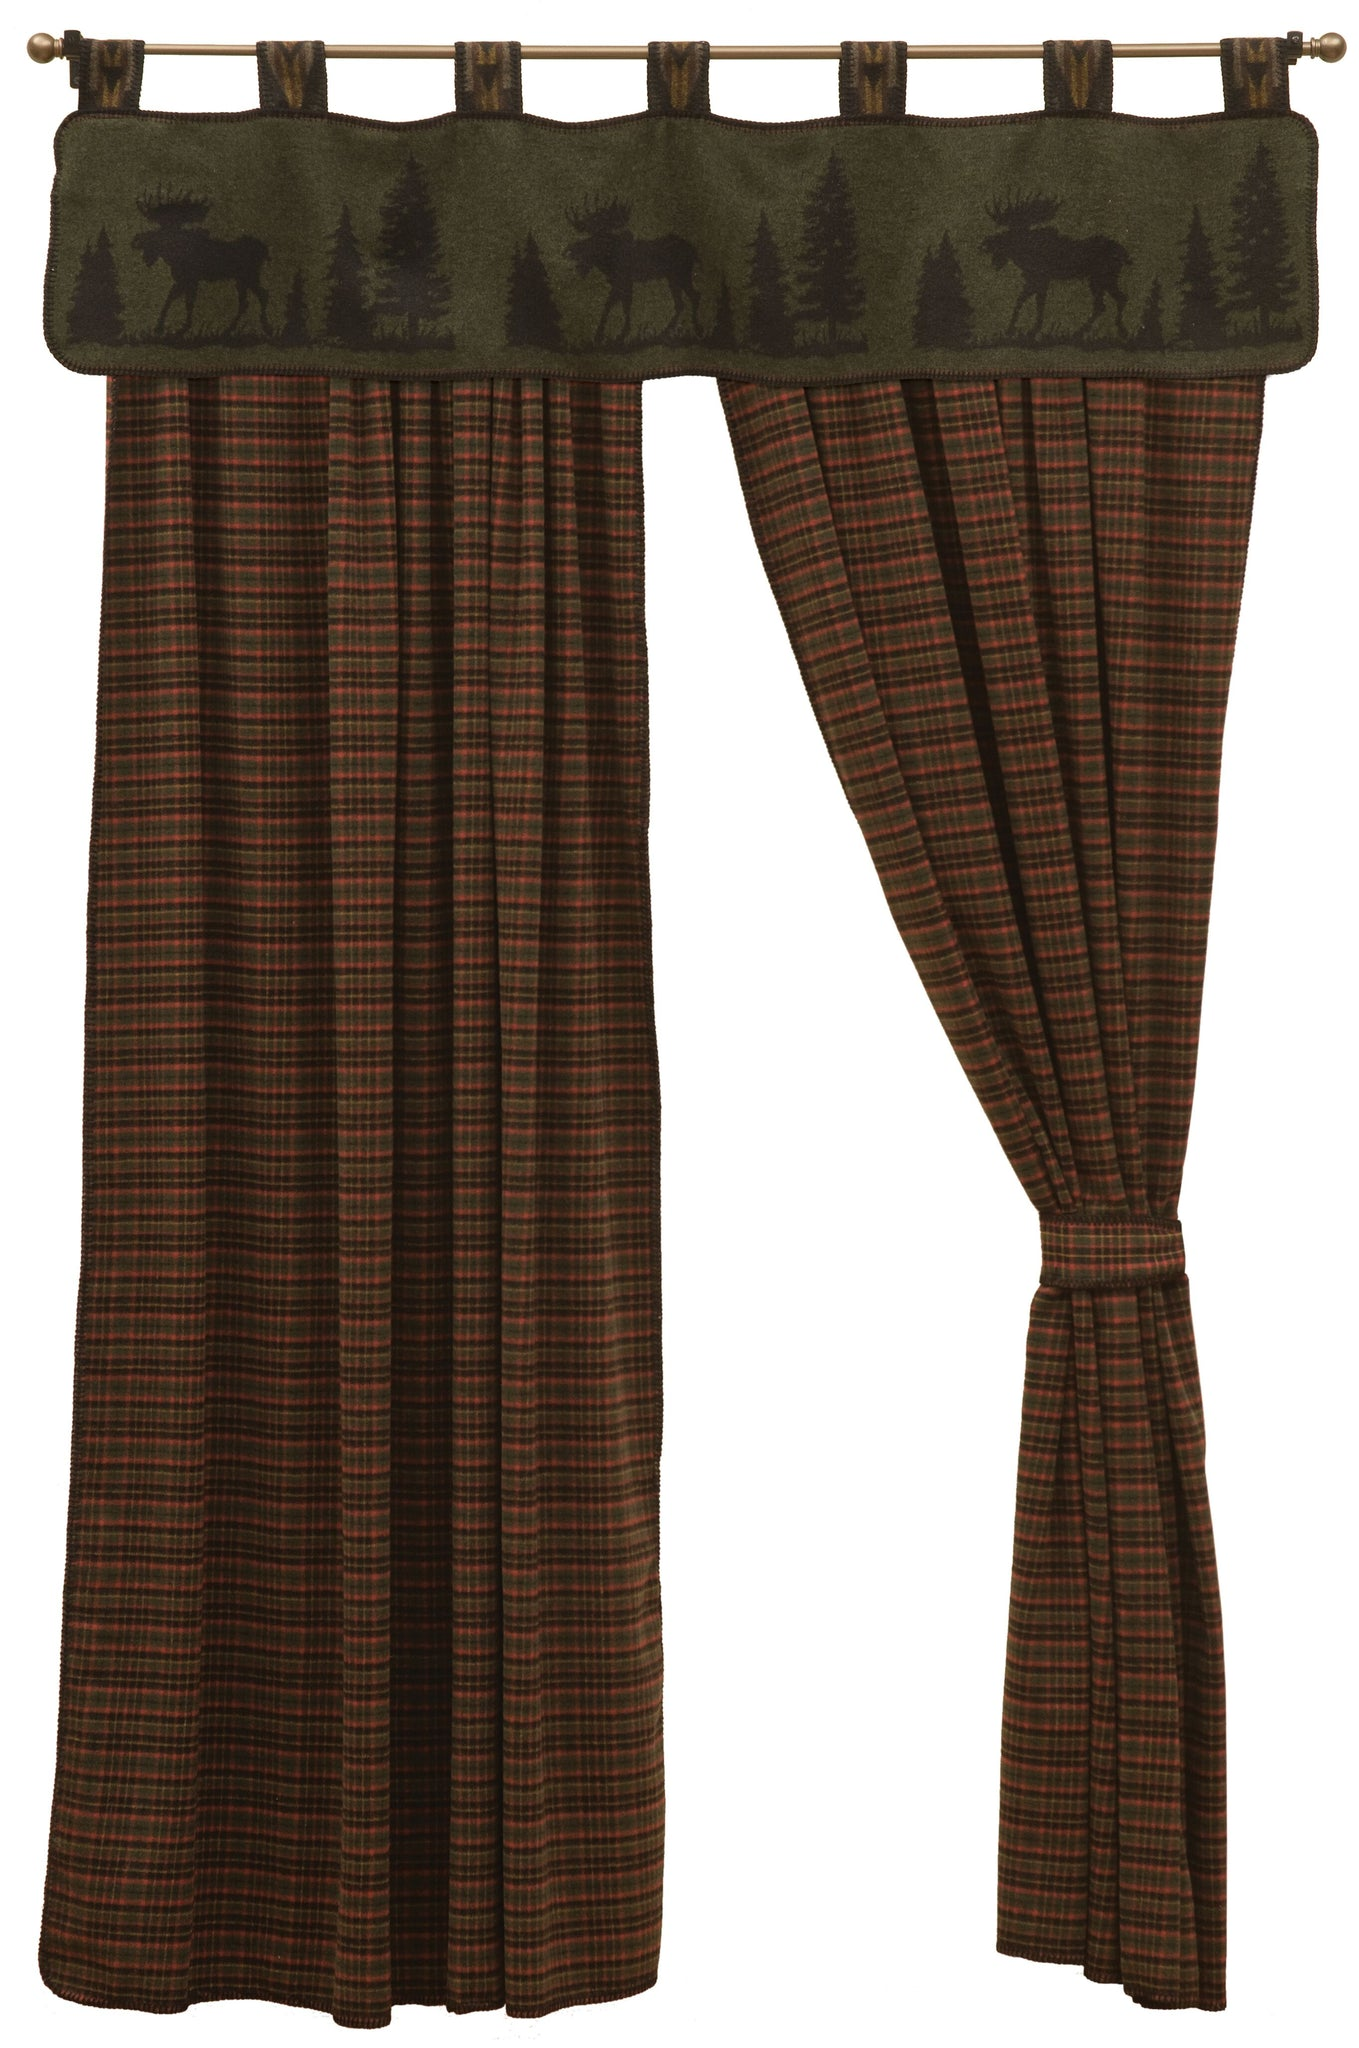 Moose 1 Drape Sets Wooded River - unique linens online